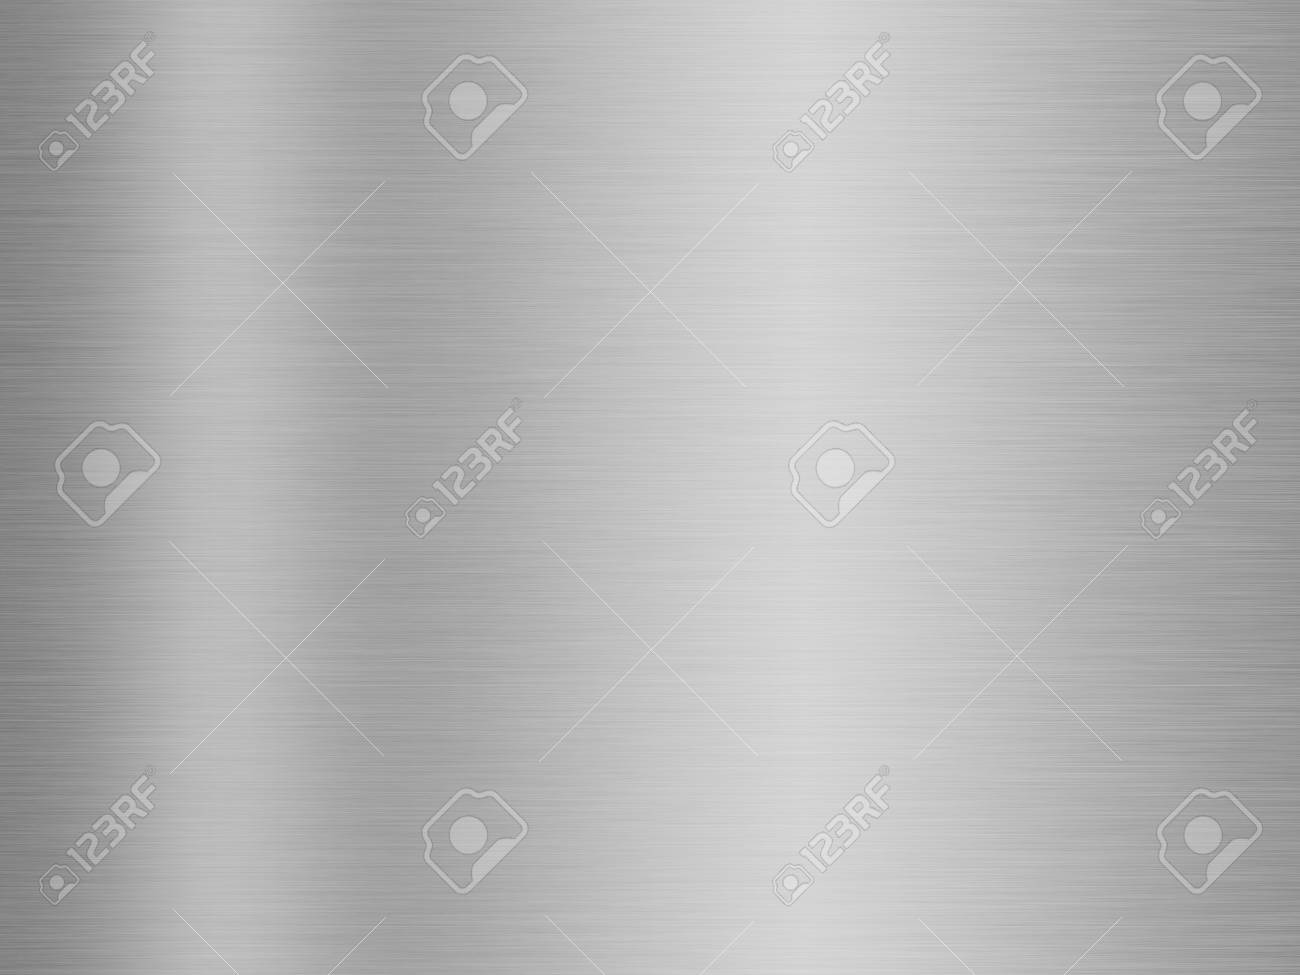 Stainless steel texture or metal texture background Banque d'images - 75076757